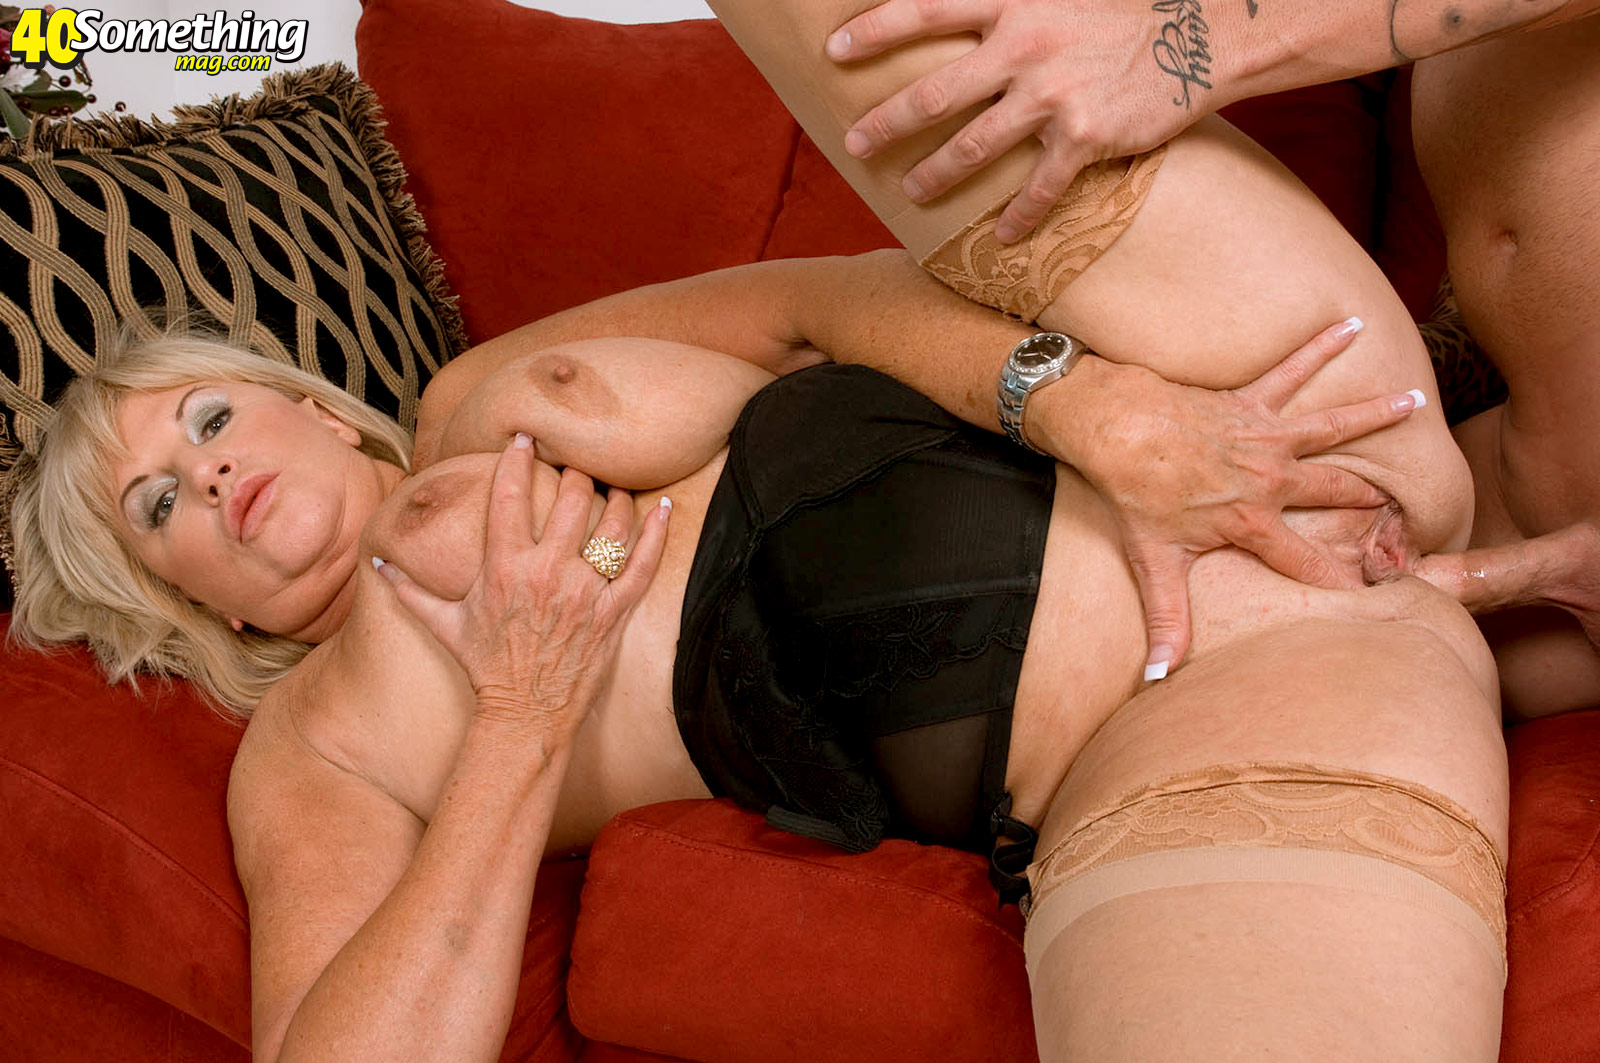 Mature women who love anal